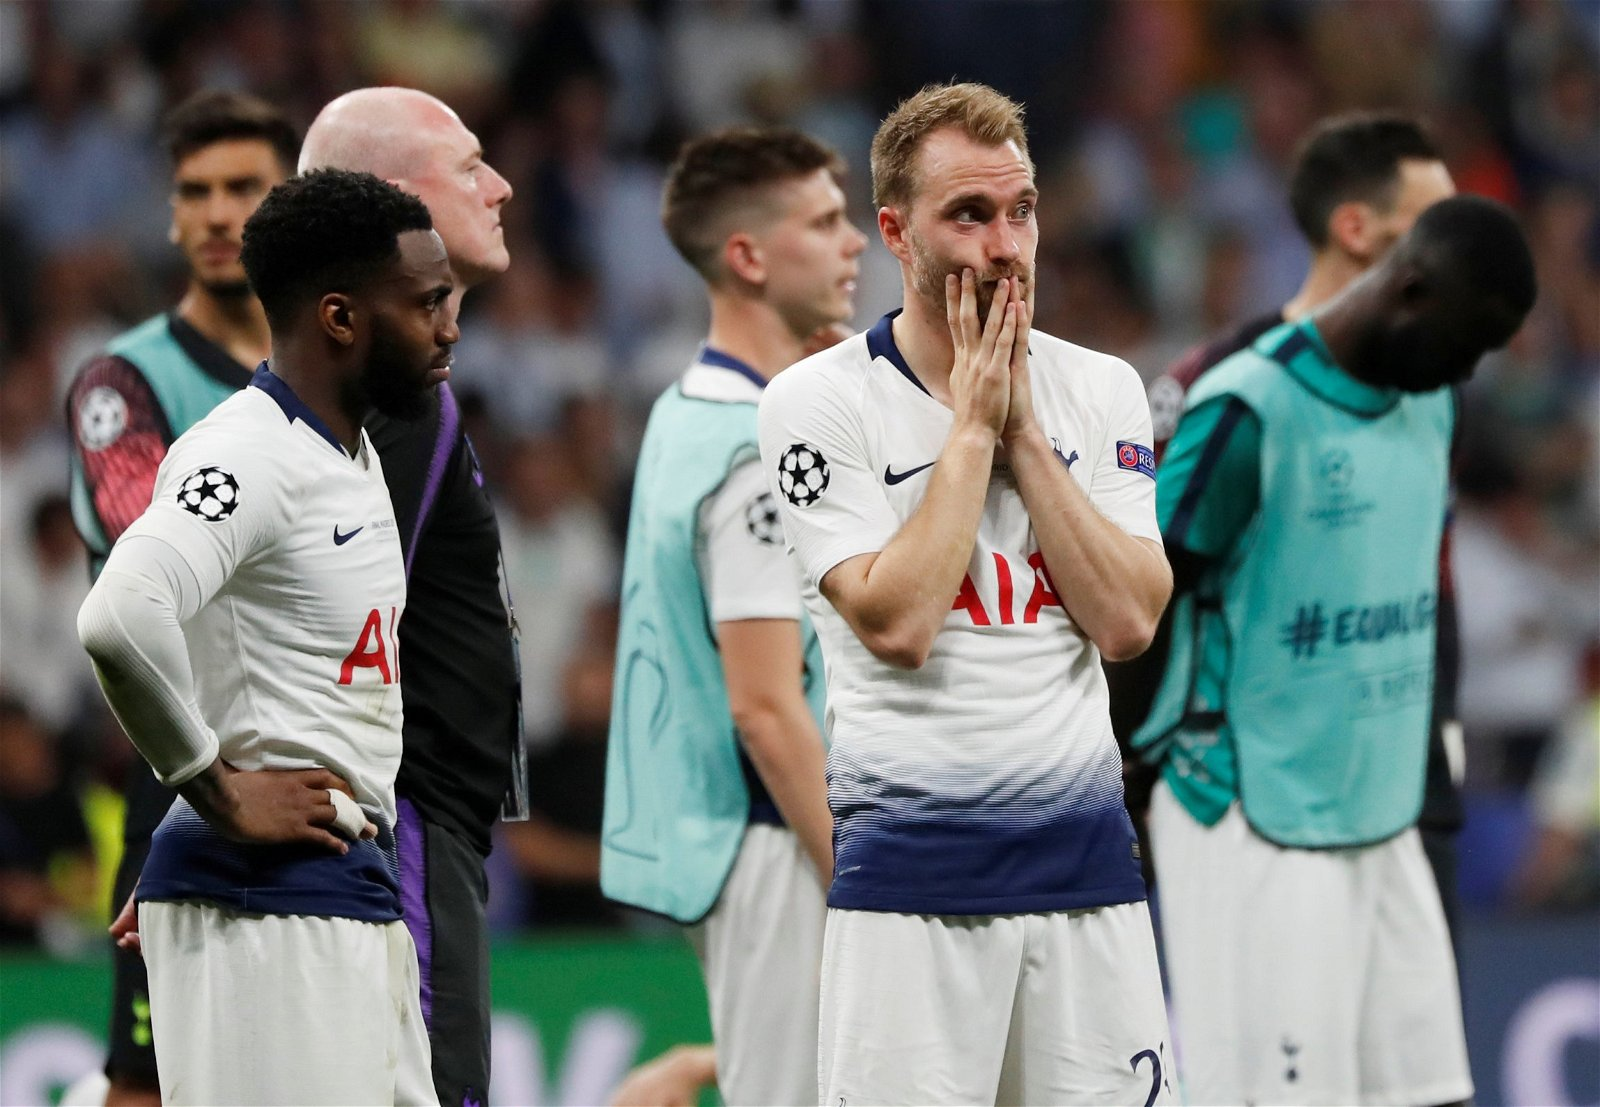 Christian Eriksen looks dejected after Tottenham Hotspur defeat